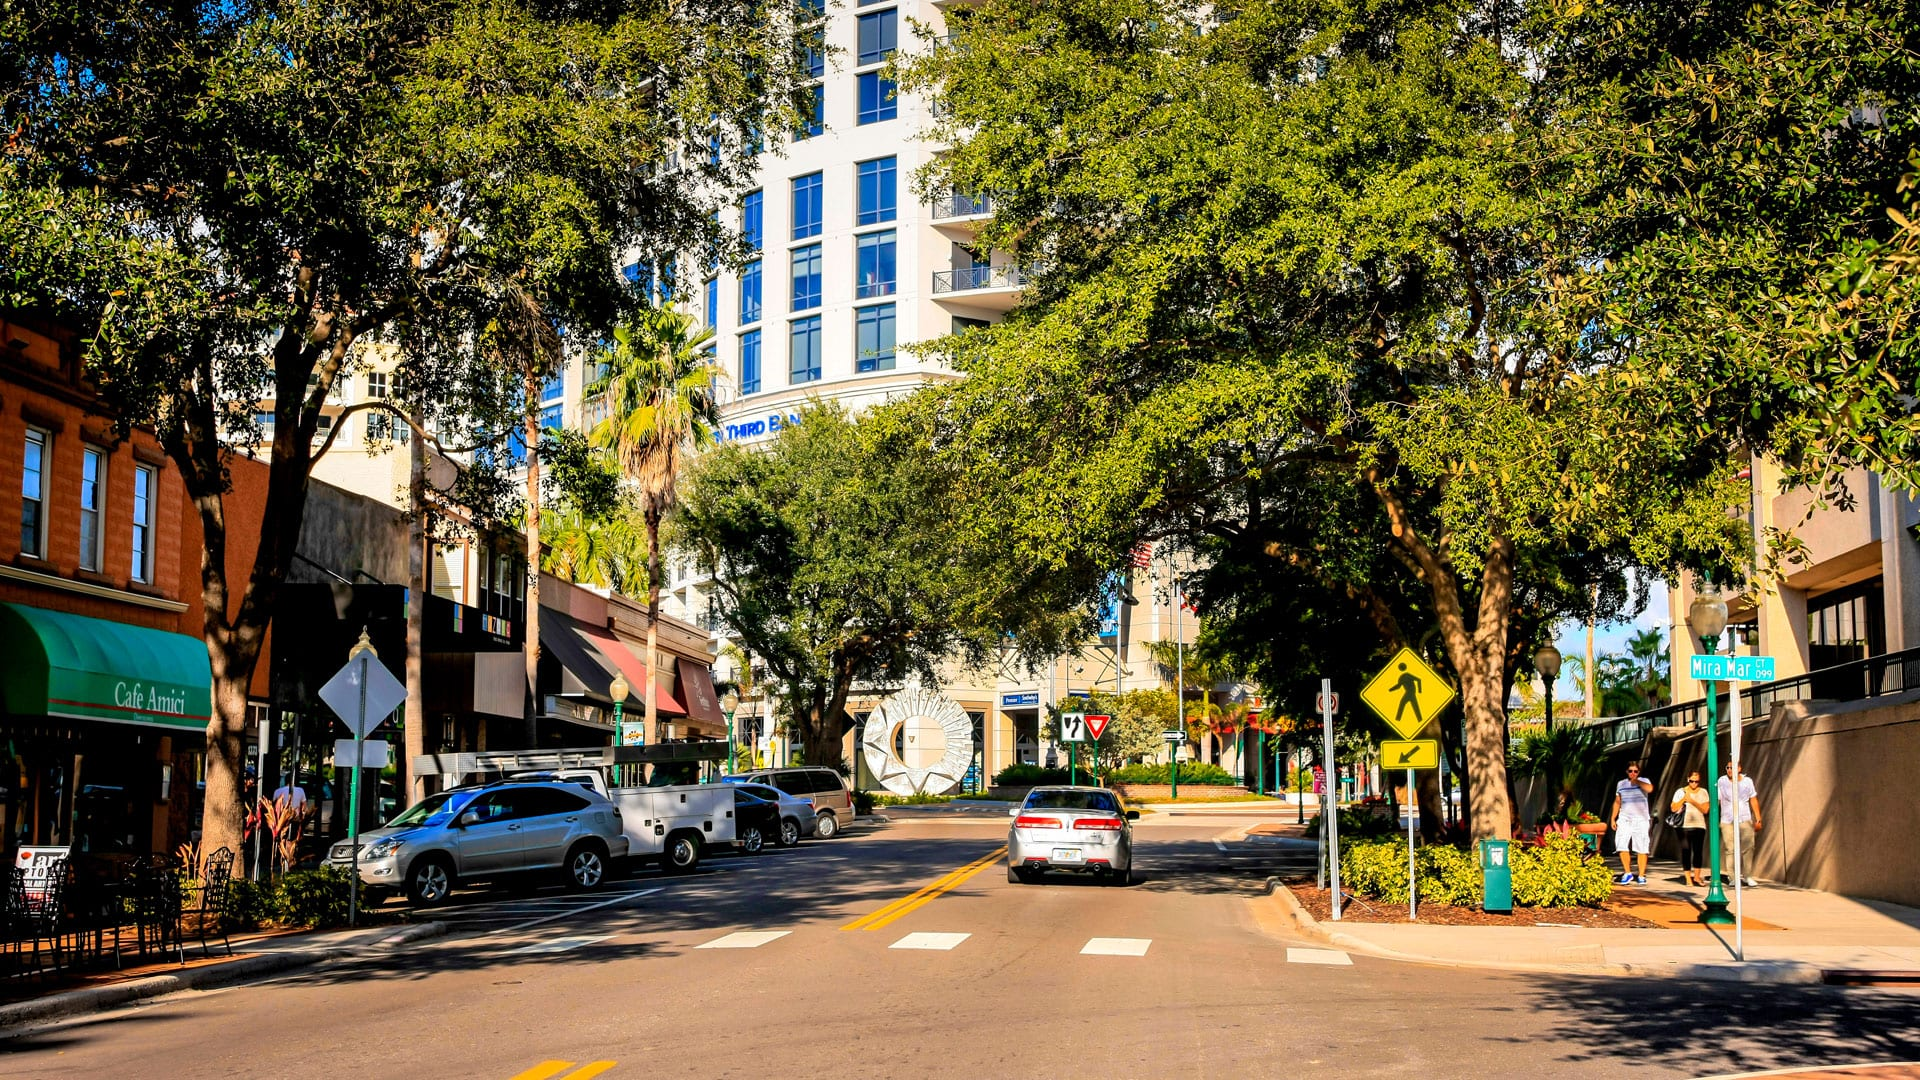 location-8-sarasota-street2